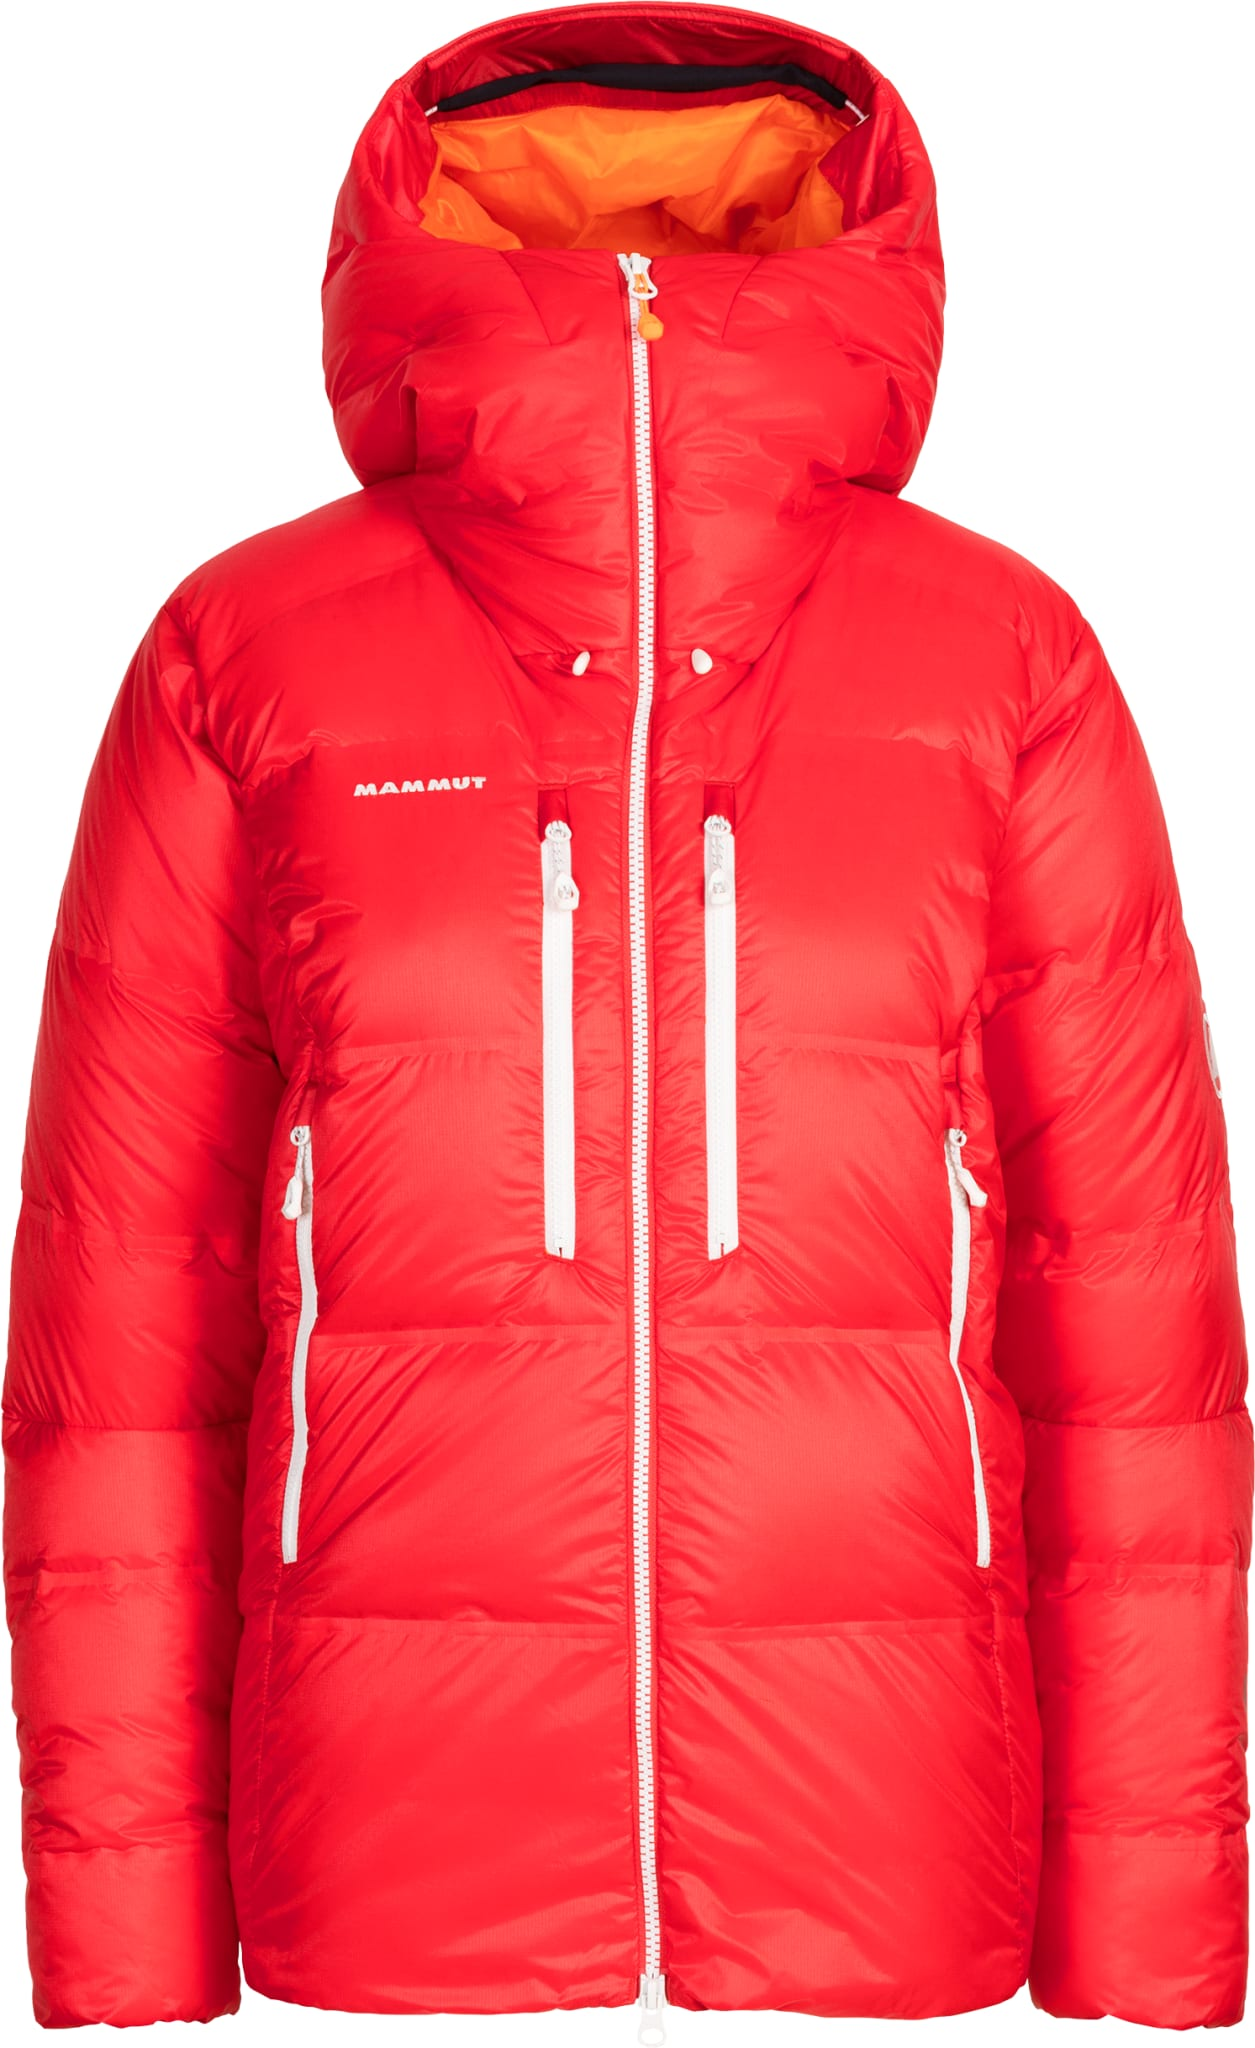 Ws Eigerjoch Pro IN Hooded Jacket